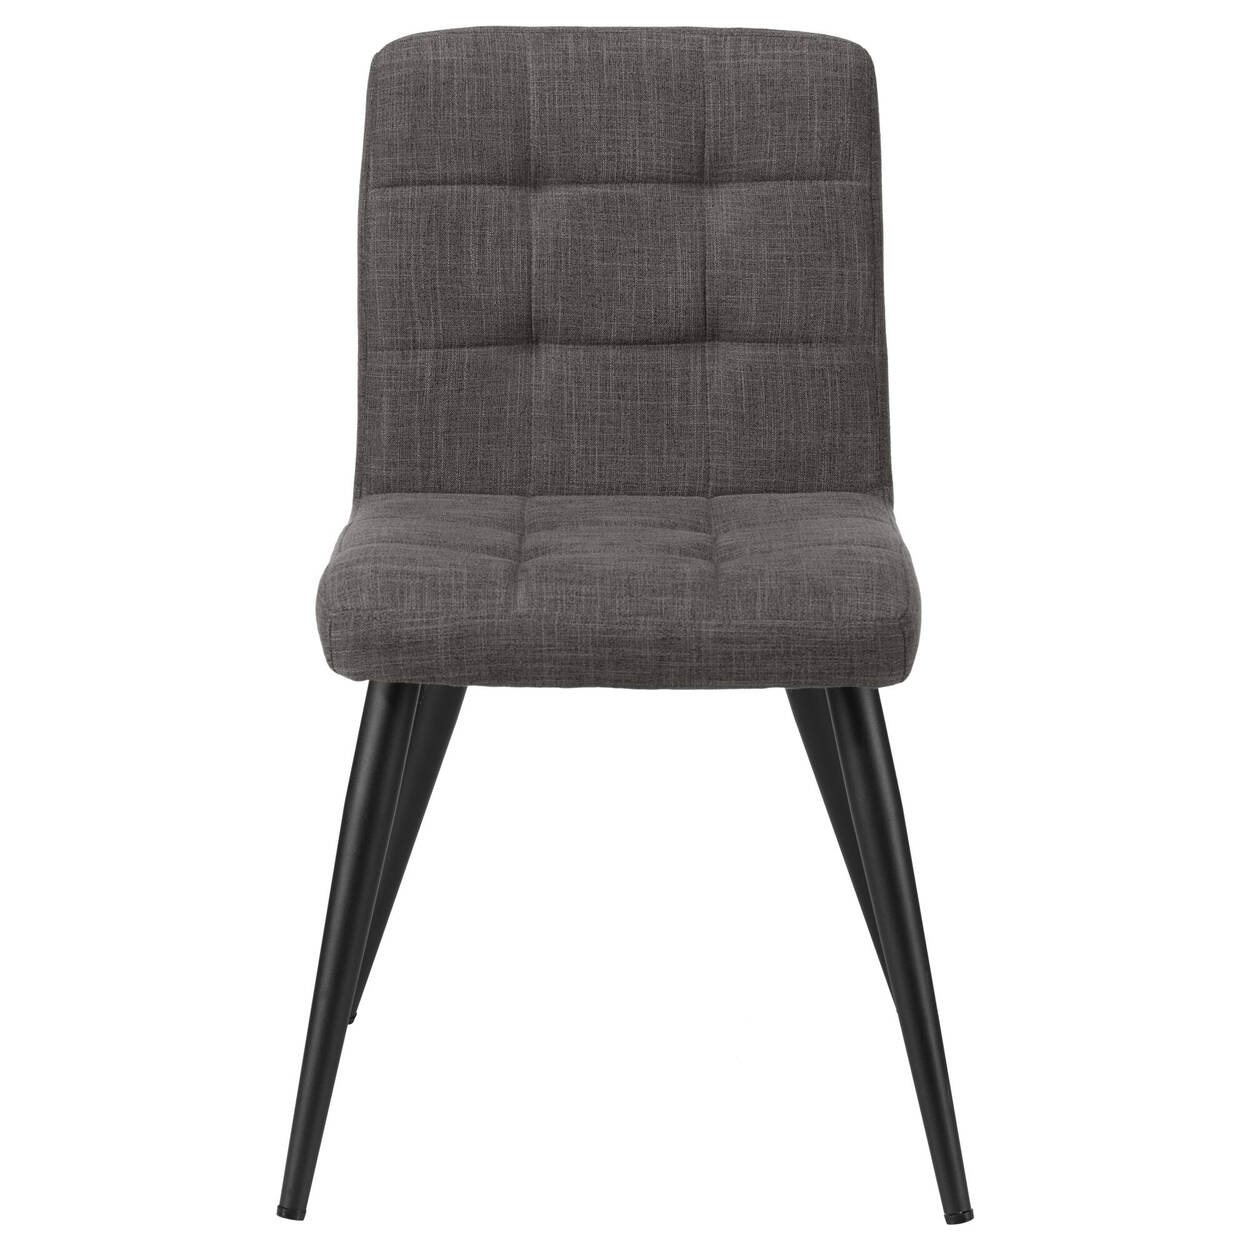 Tufted Fabric and Metal Dining Chair